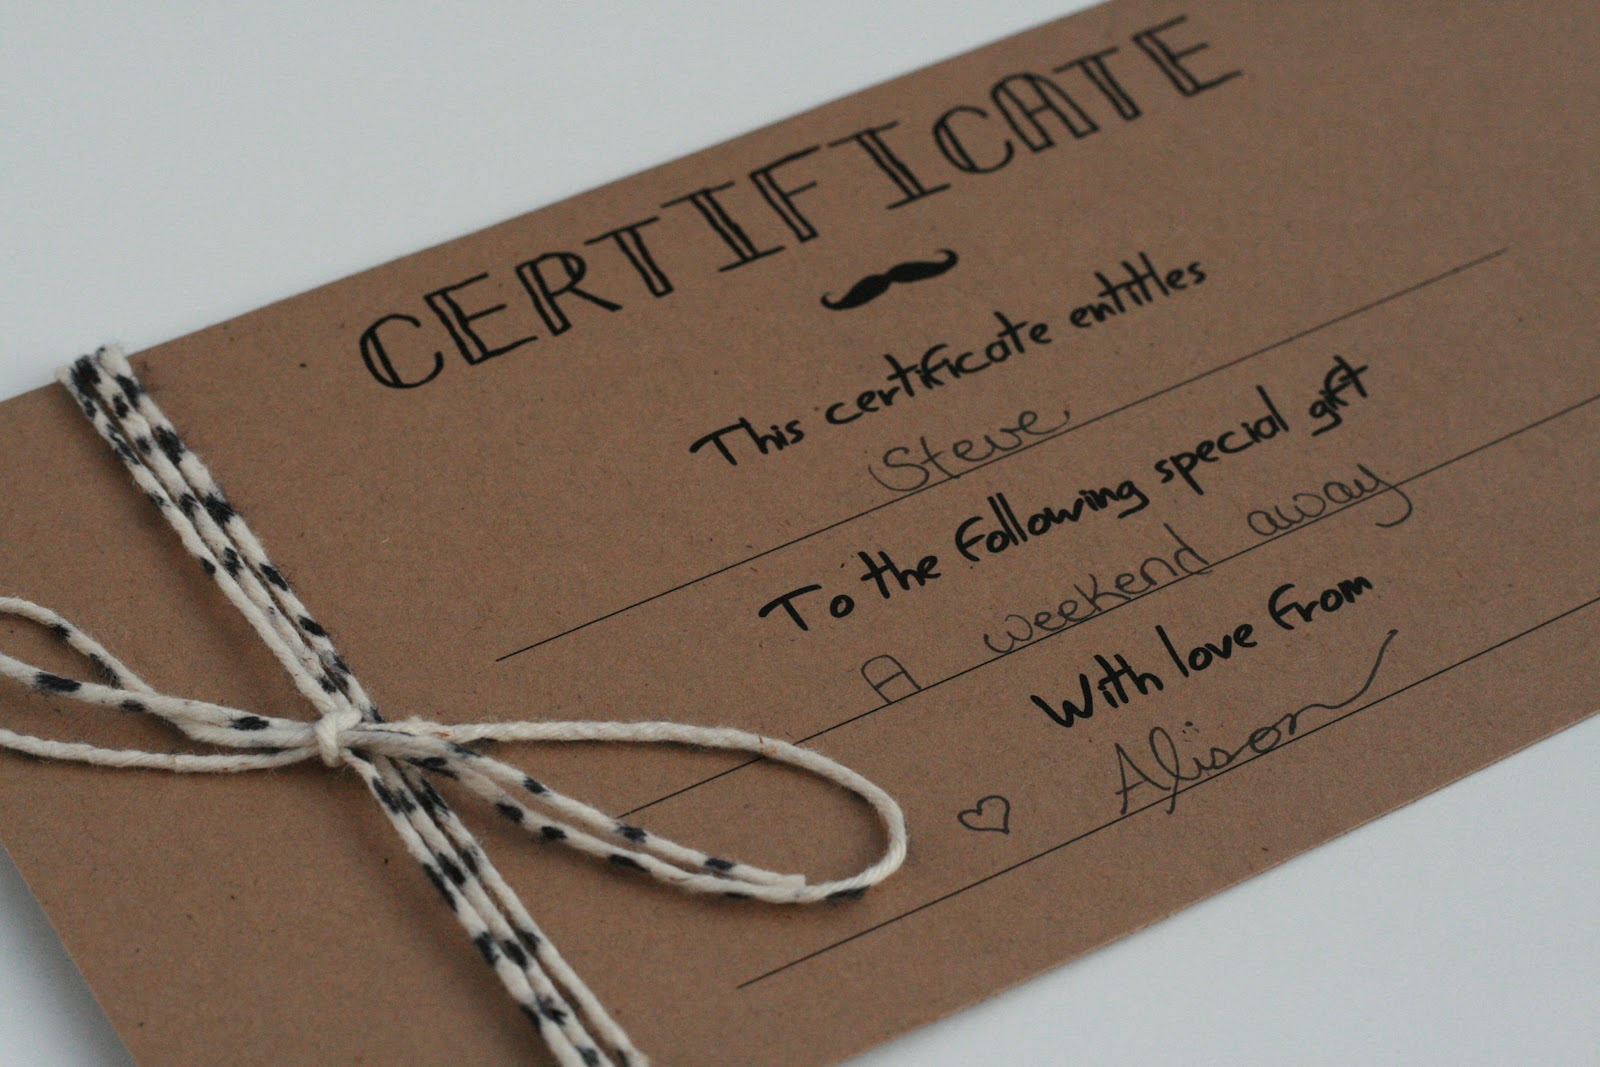 The petit cadeau printable gift certificates for men if you want to embellish your gift certificate i followed the diy bakers twine tutorial from a step in the journey to make my own bakers twine yelopaper Image collections